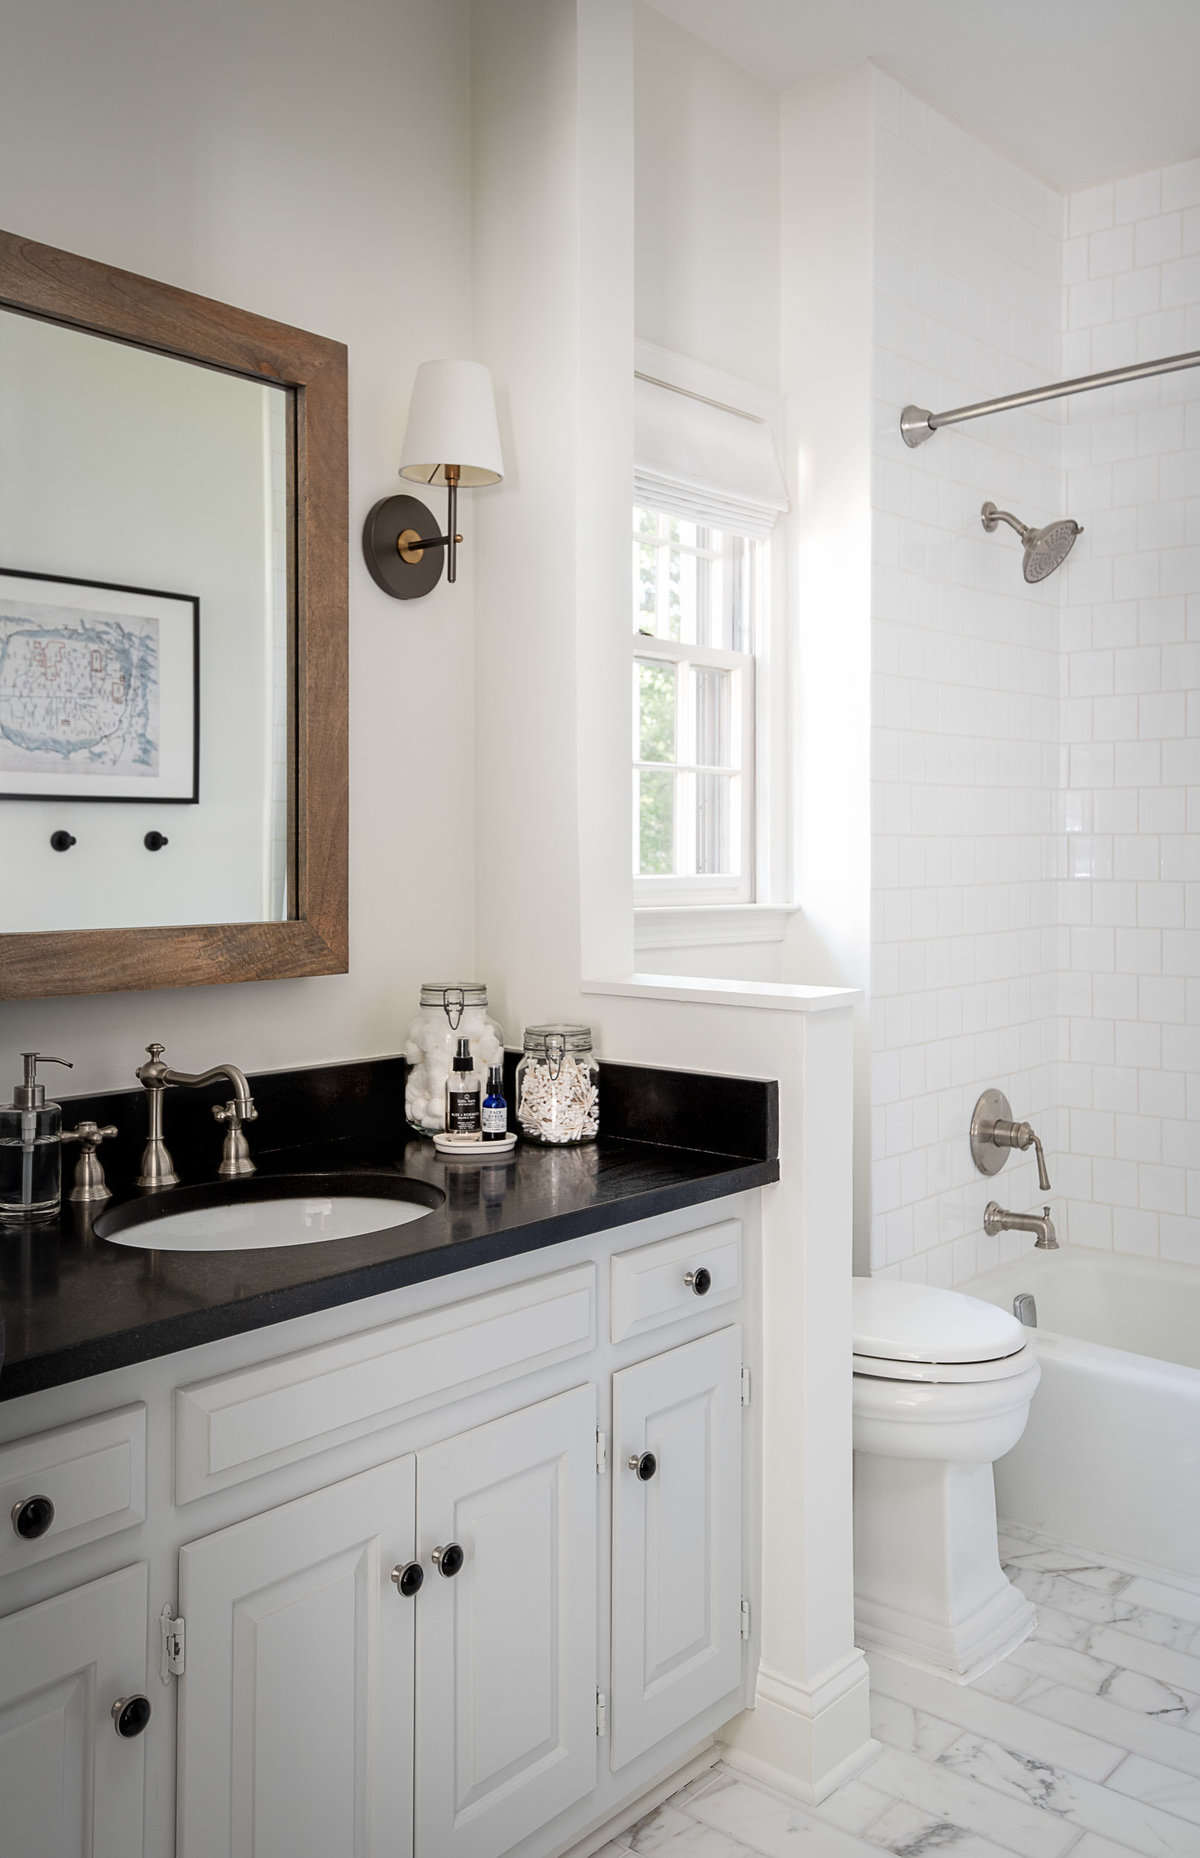 Bruton Bath Clemons Design Co.